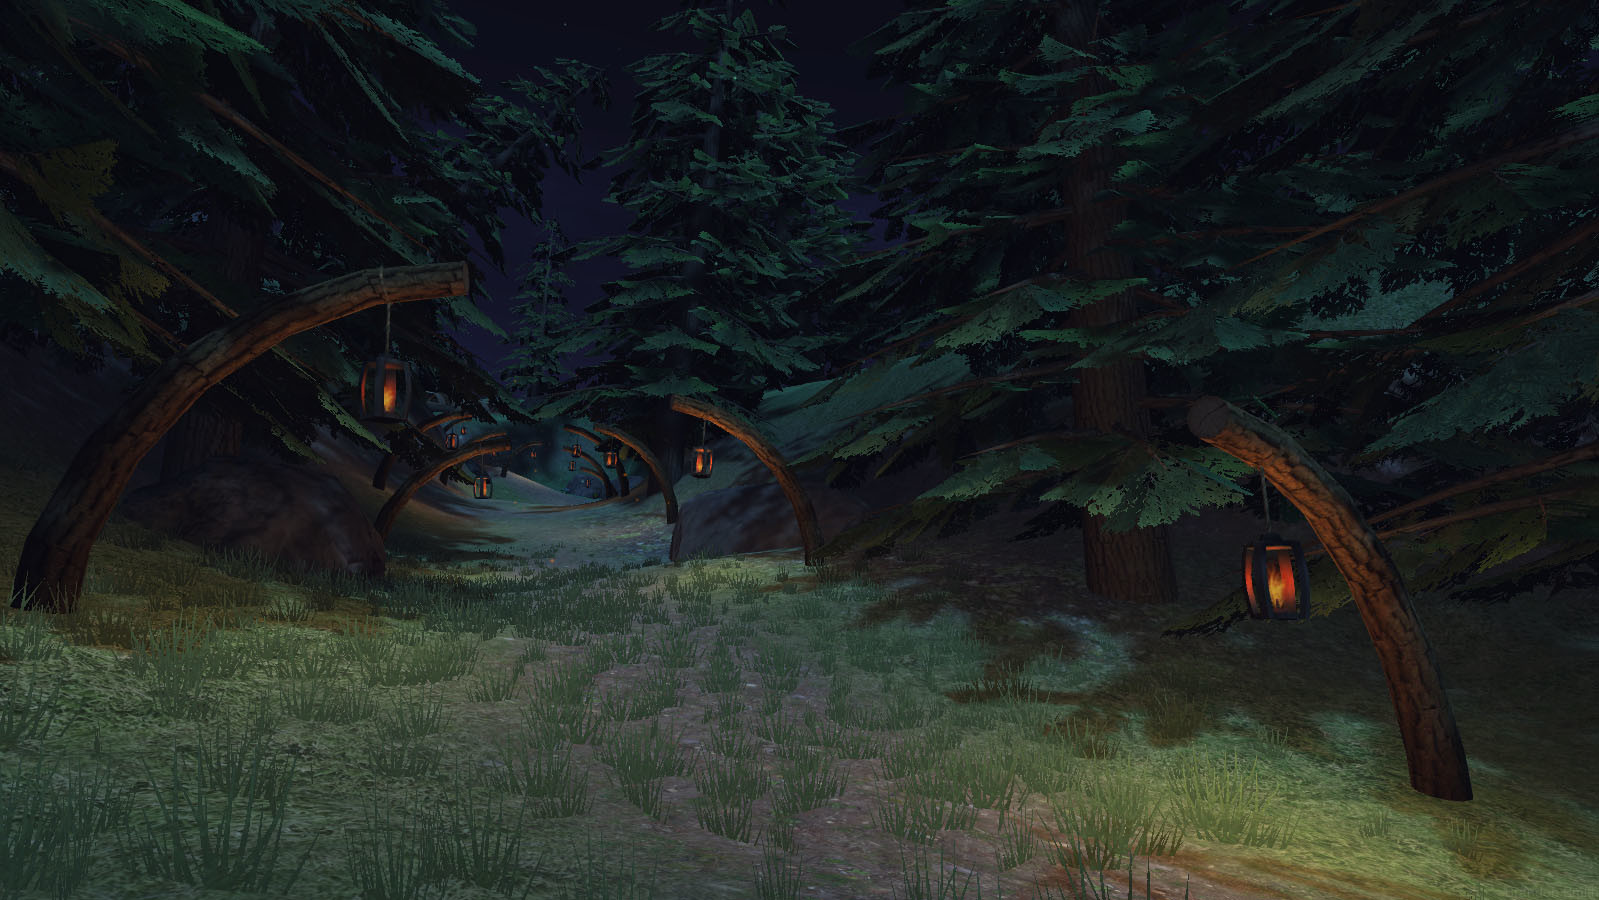 An old Unity screenshot of a darker, more whimsical environment